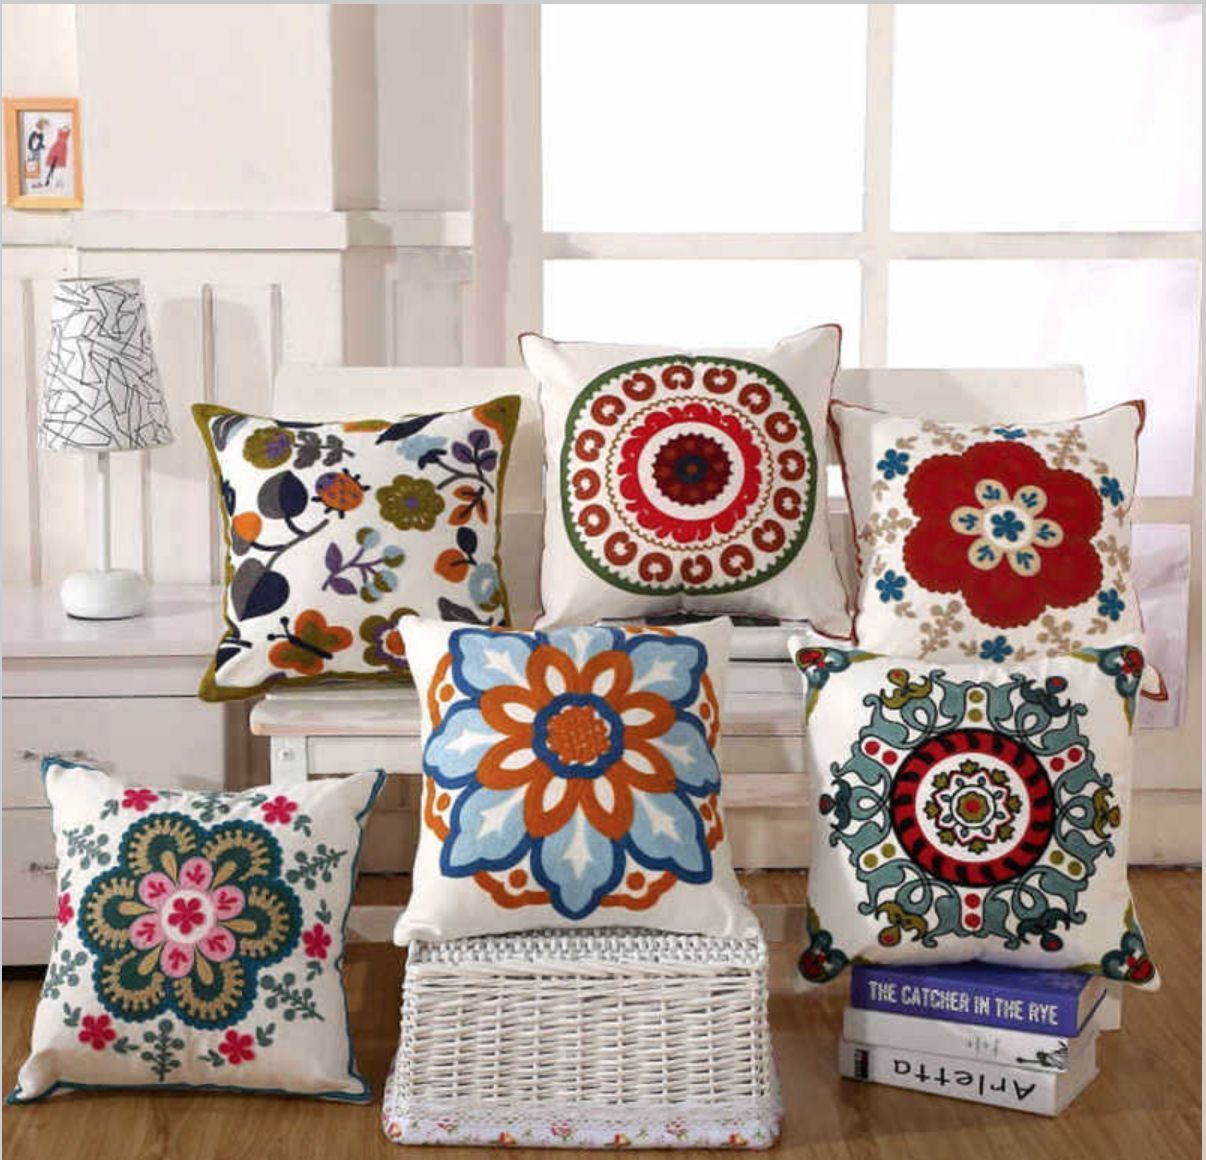 Boho turkish retro hippy indian art embroidered floral pillow